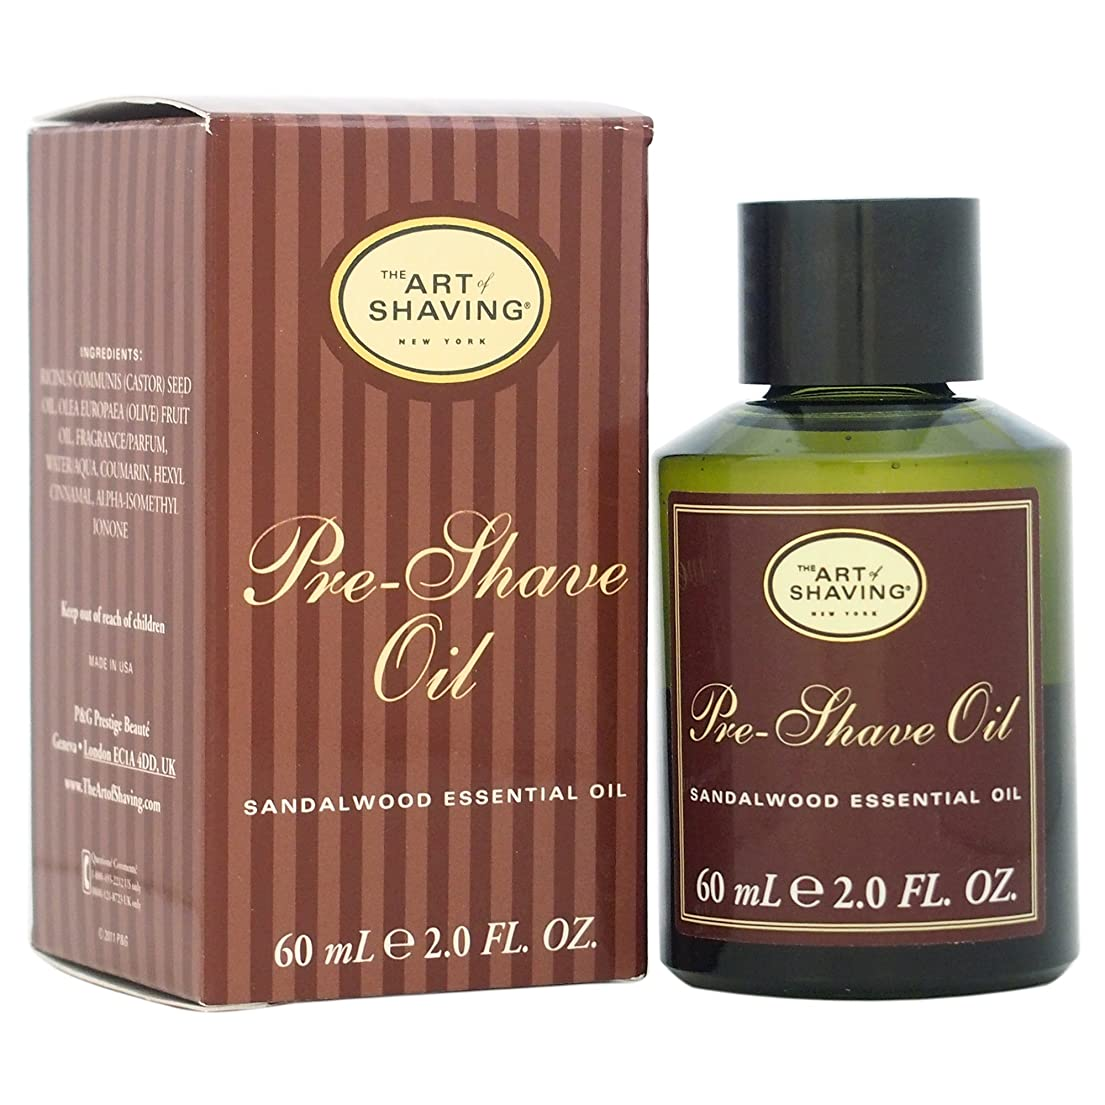 悪性の天窓公平なThe Art Of Shaving Pre-Shave Oil With Sandalwood Essential Oil (並行輸入品) [並行輸入品]